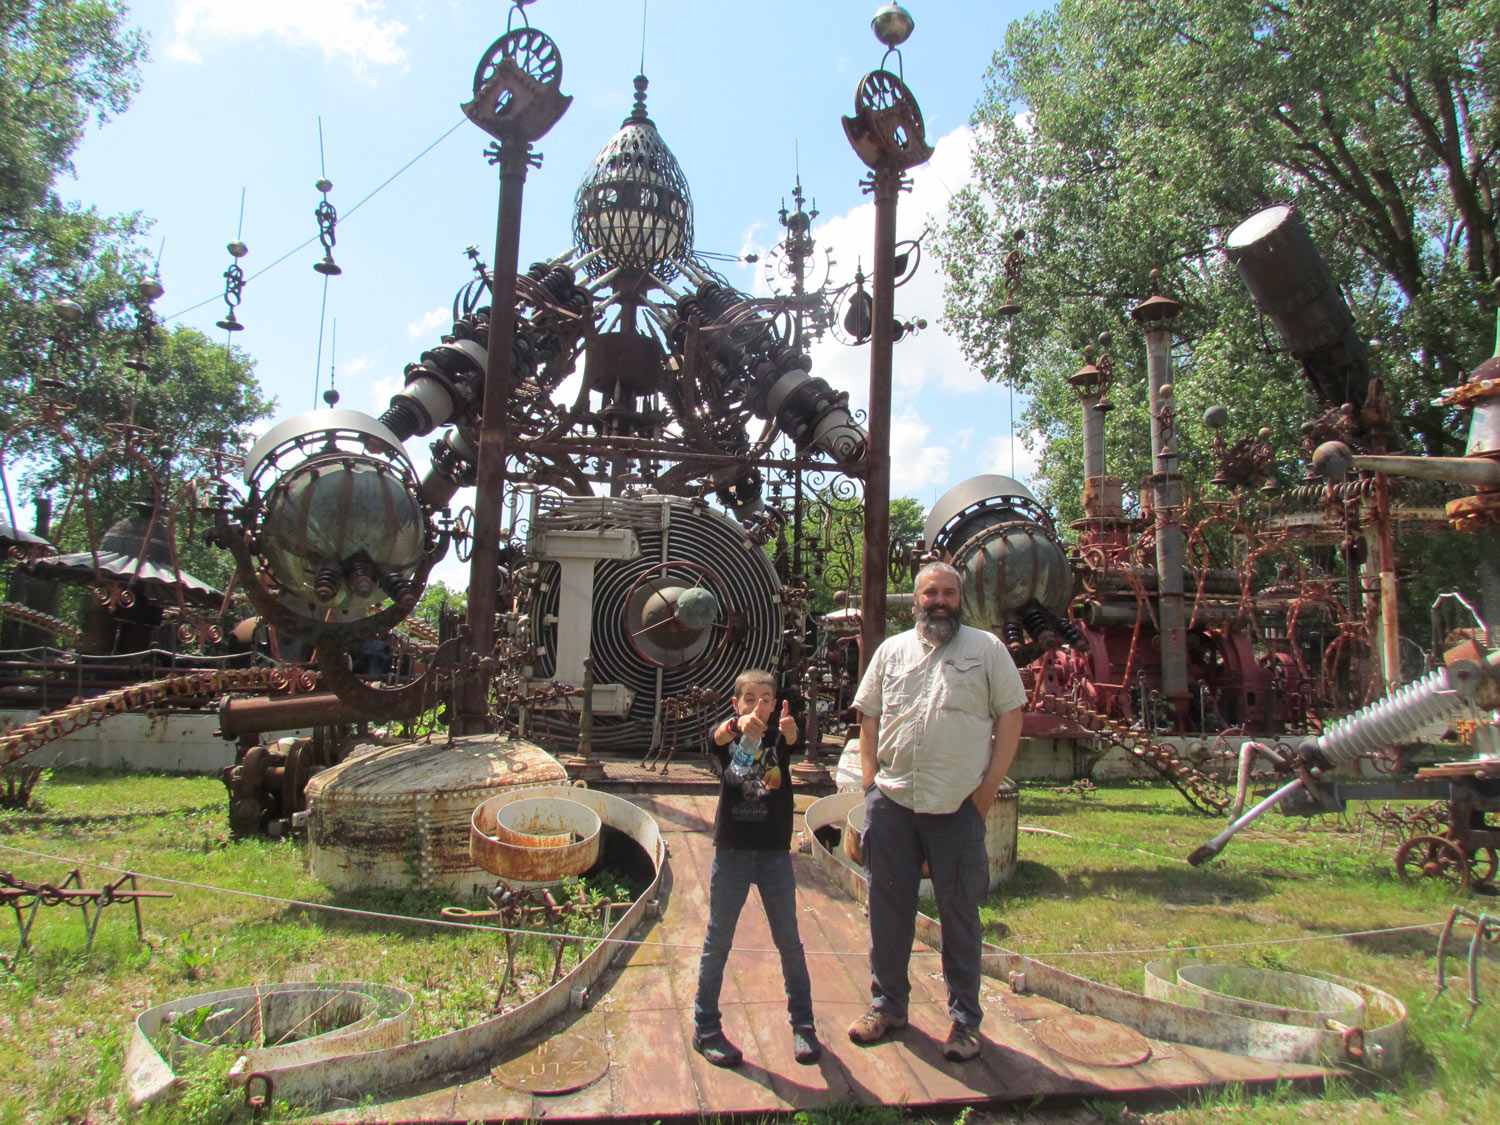 Two thumbs up for Forevertron.